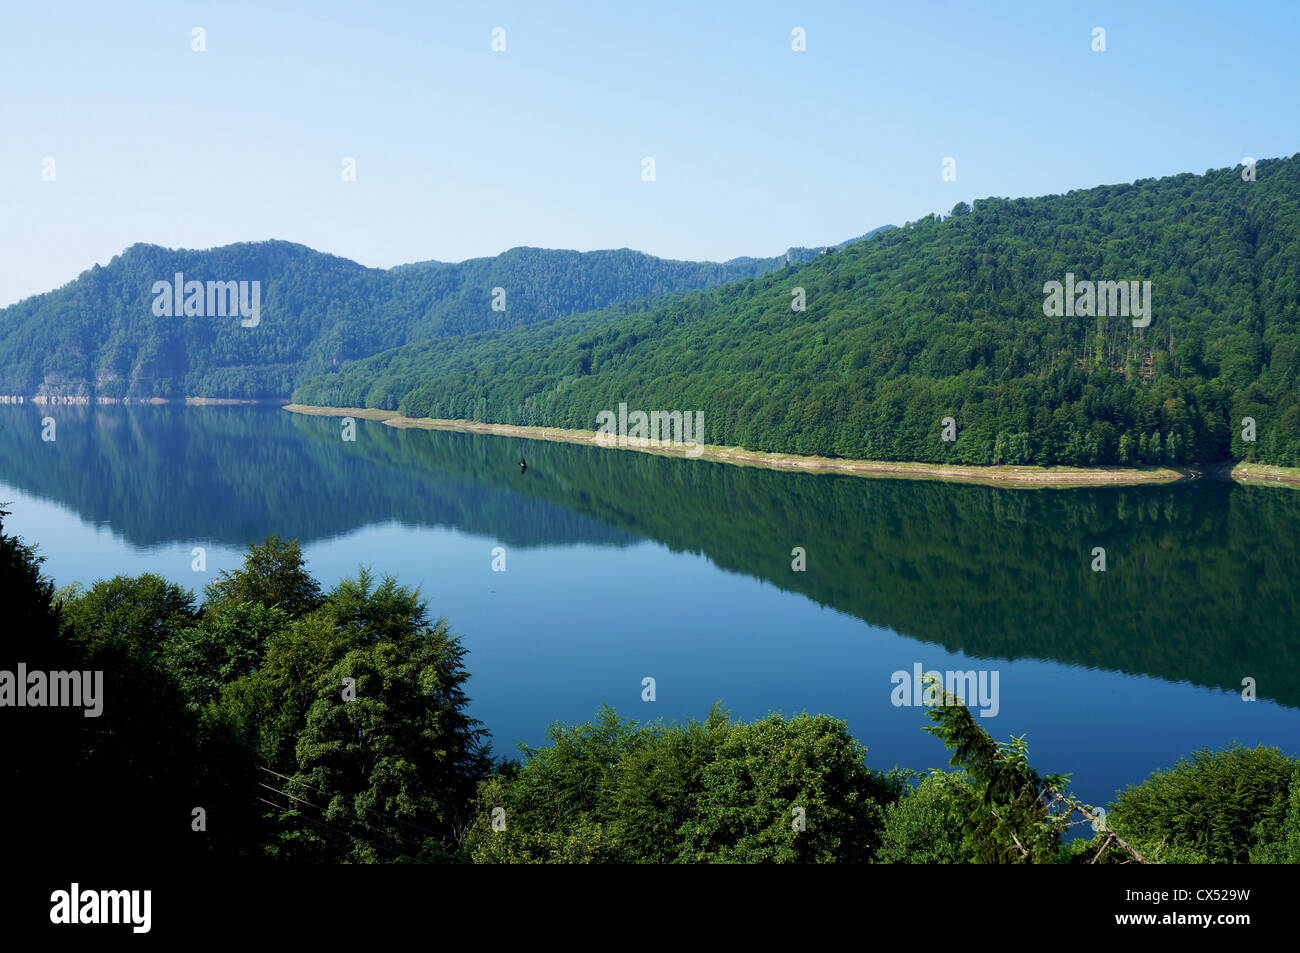 Panorama view of the Vidraru lake in Fagaras mountains of Romania with black swallows flying over the water - Stock Image